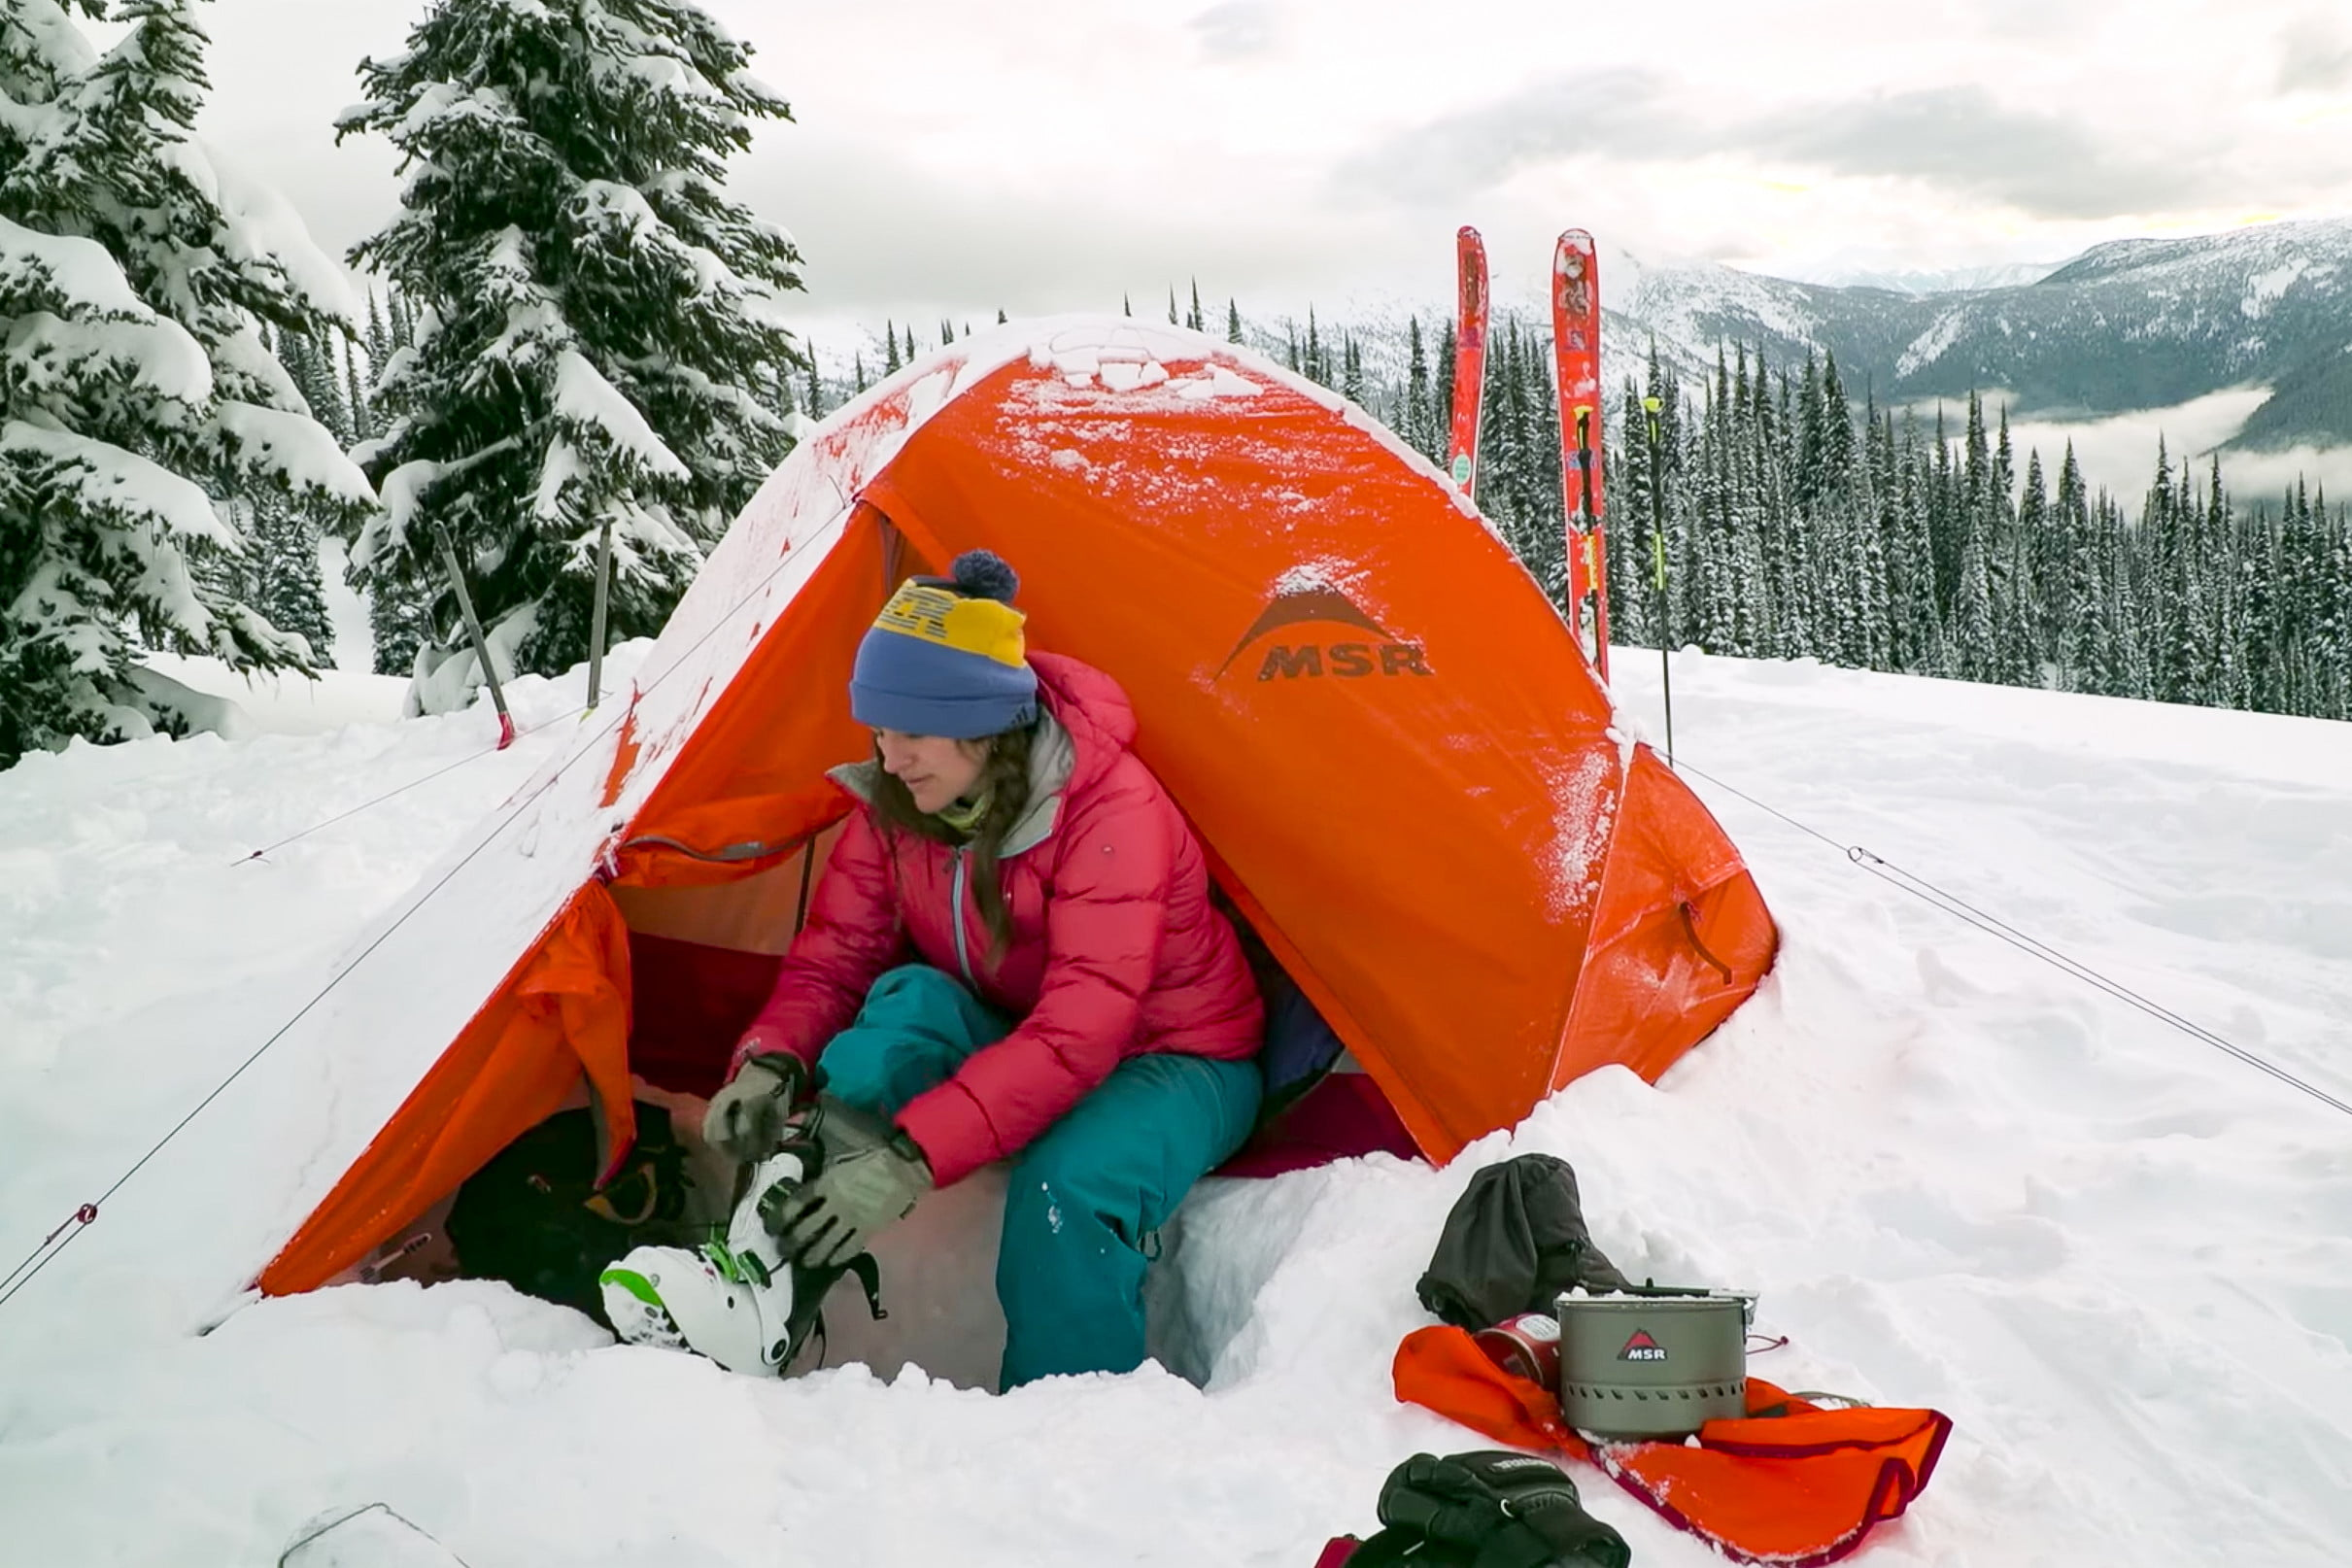 best 4 season tents msr access 2 lifestyle & The Best 4-Season Tents To Keep You Cozy All Winter | Digital Trends